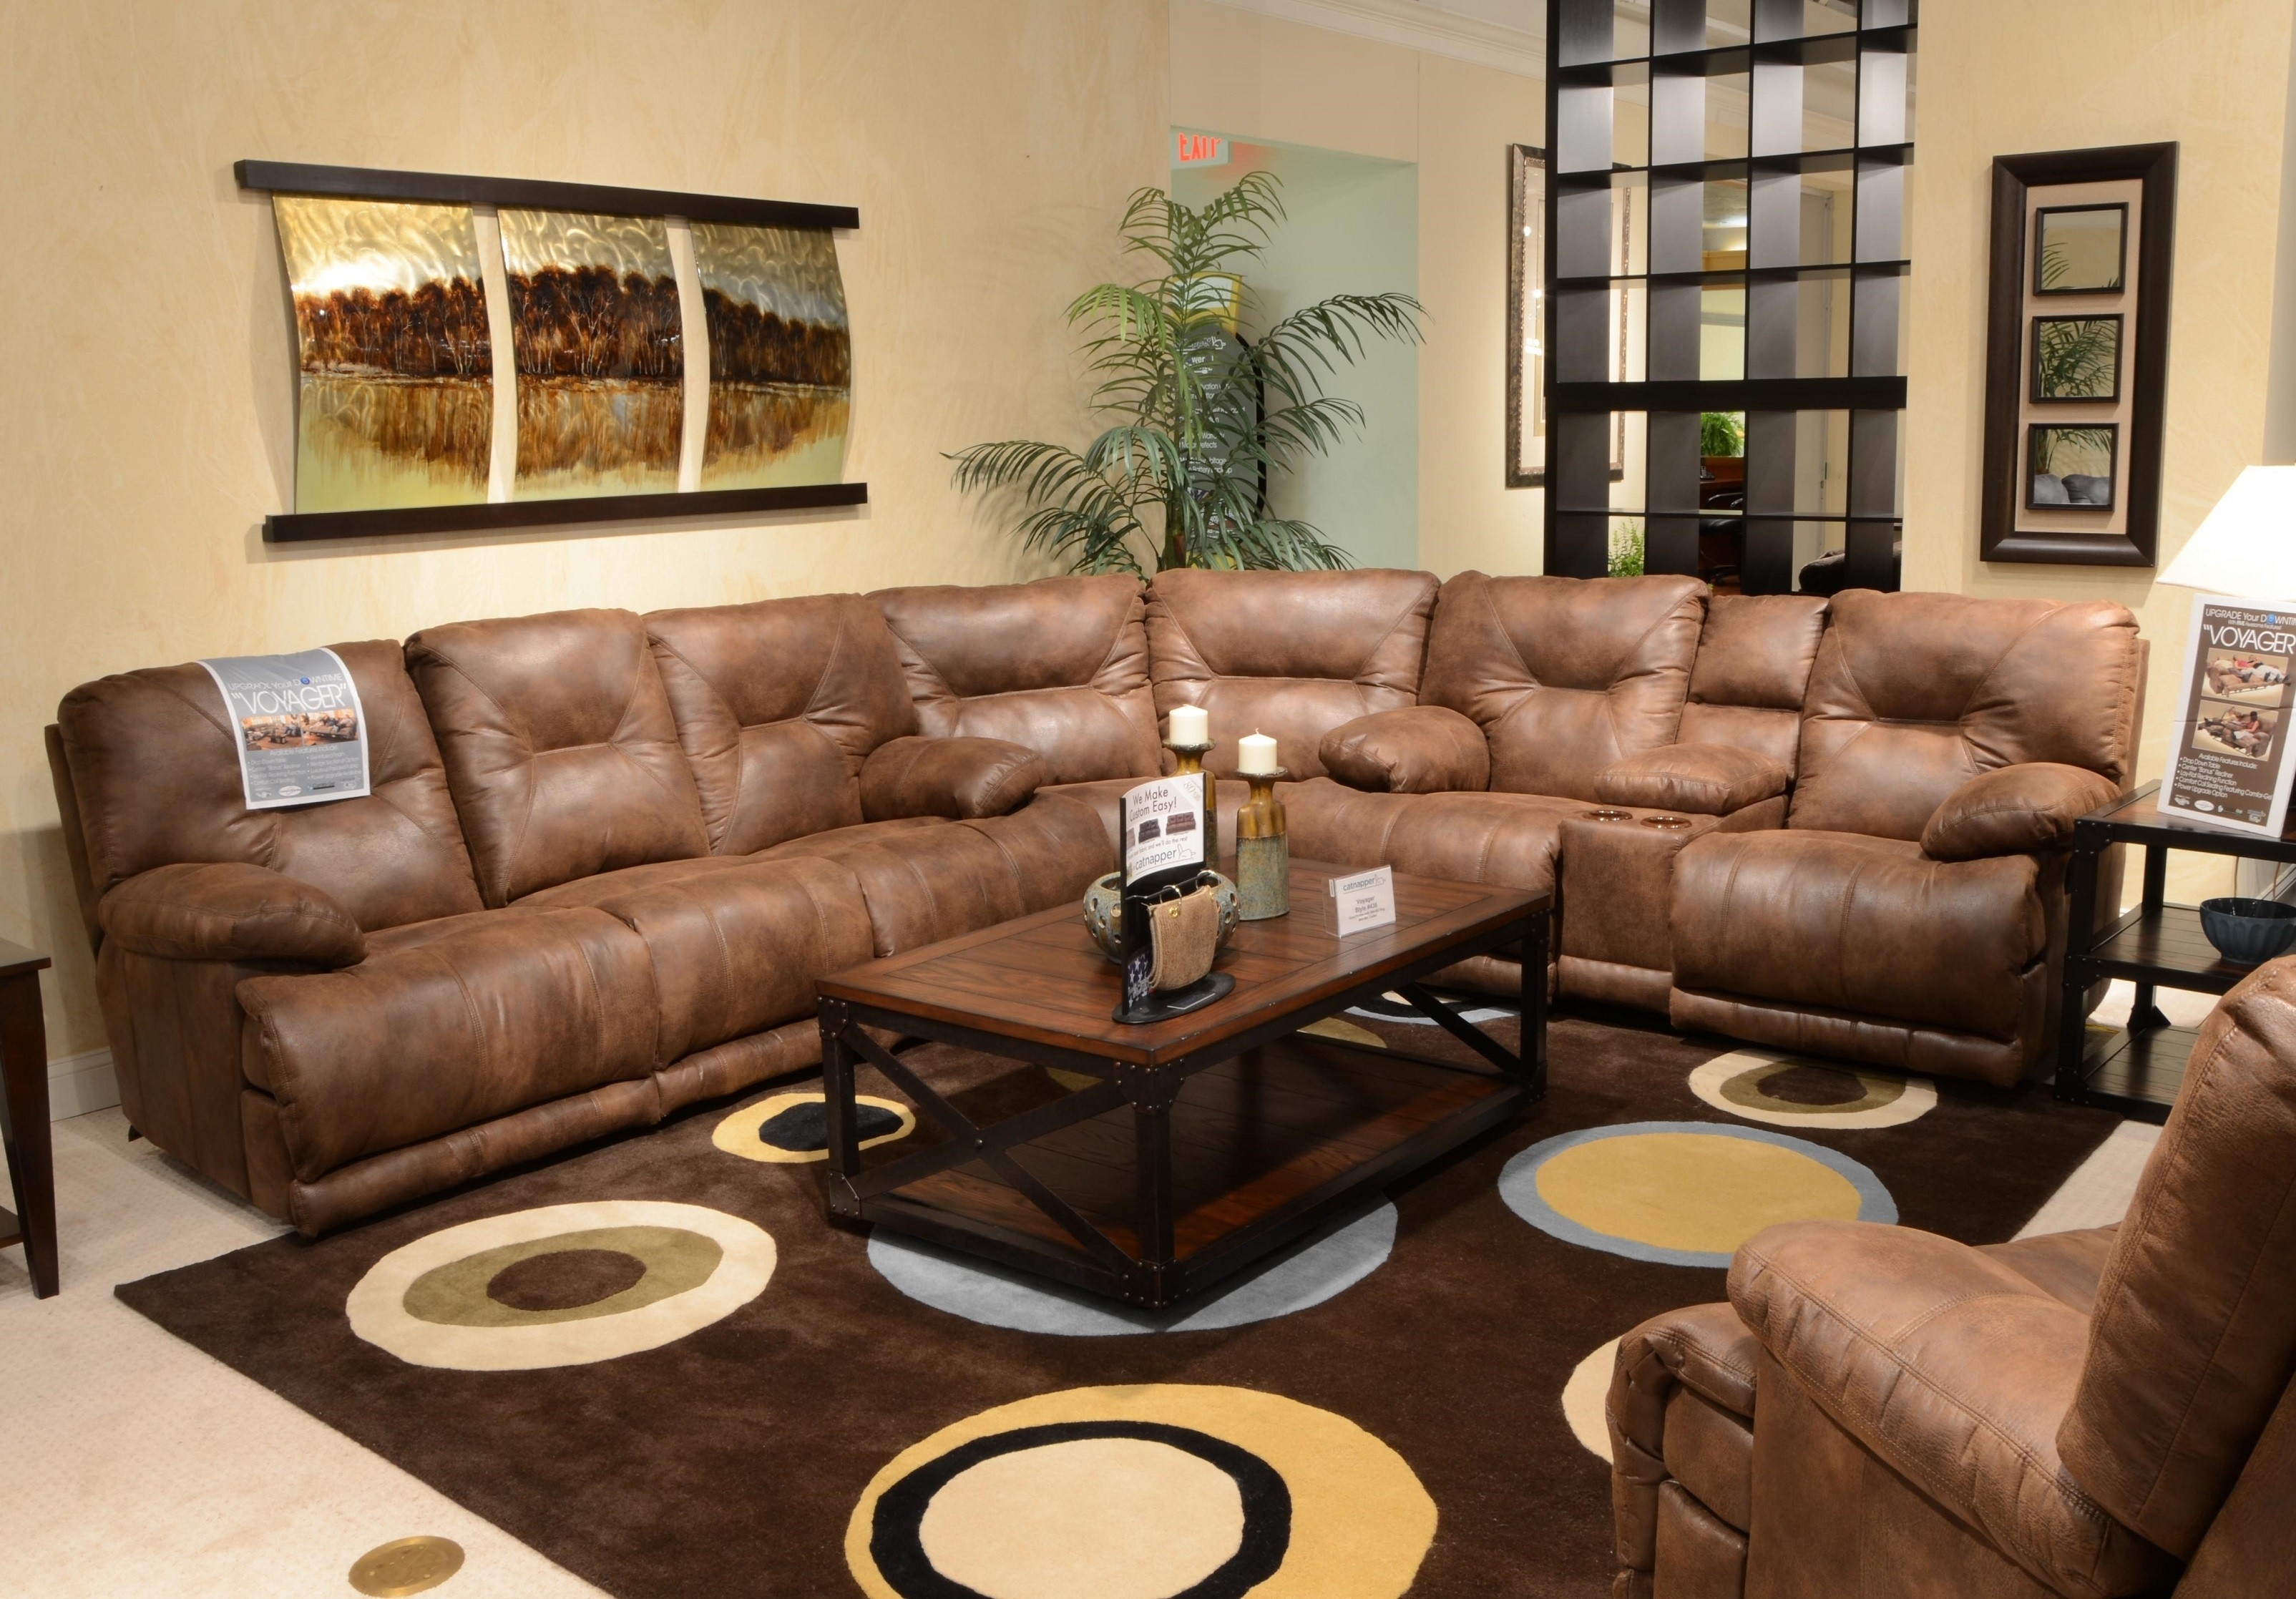 Sectional Sofa Decorating Ideas 90 With Sectional Sofa Decorating With Sectional Sofas Decorating (View 7 of 10)